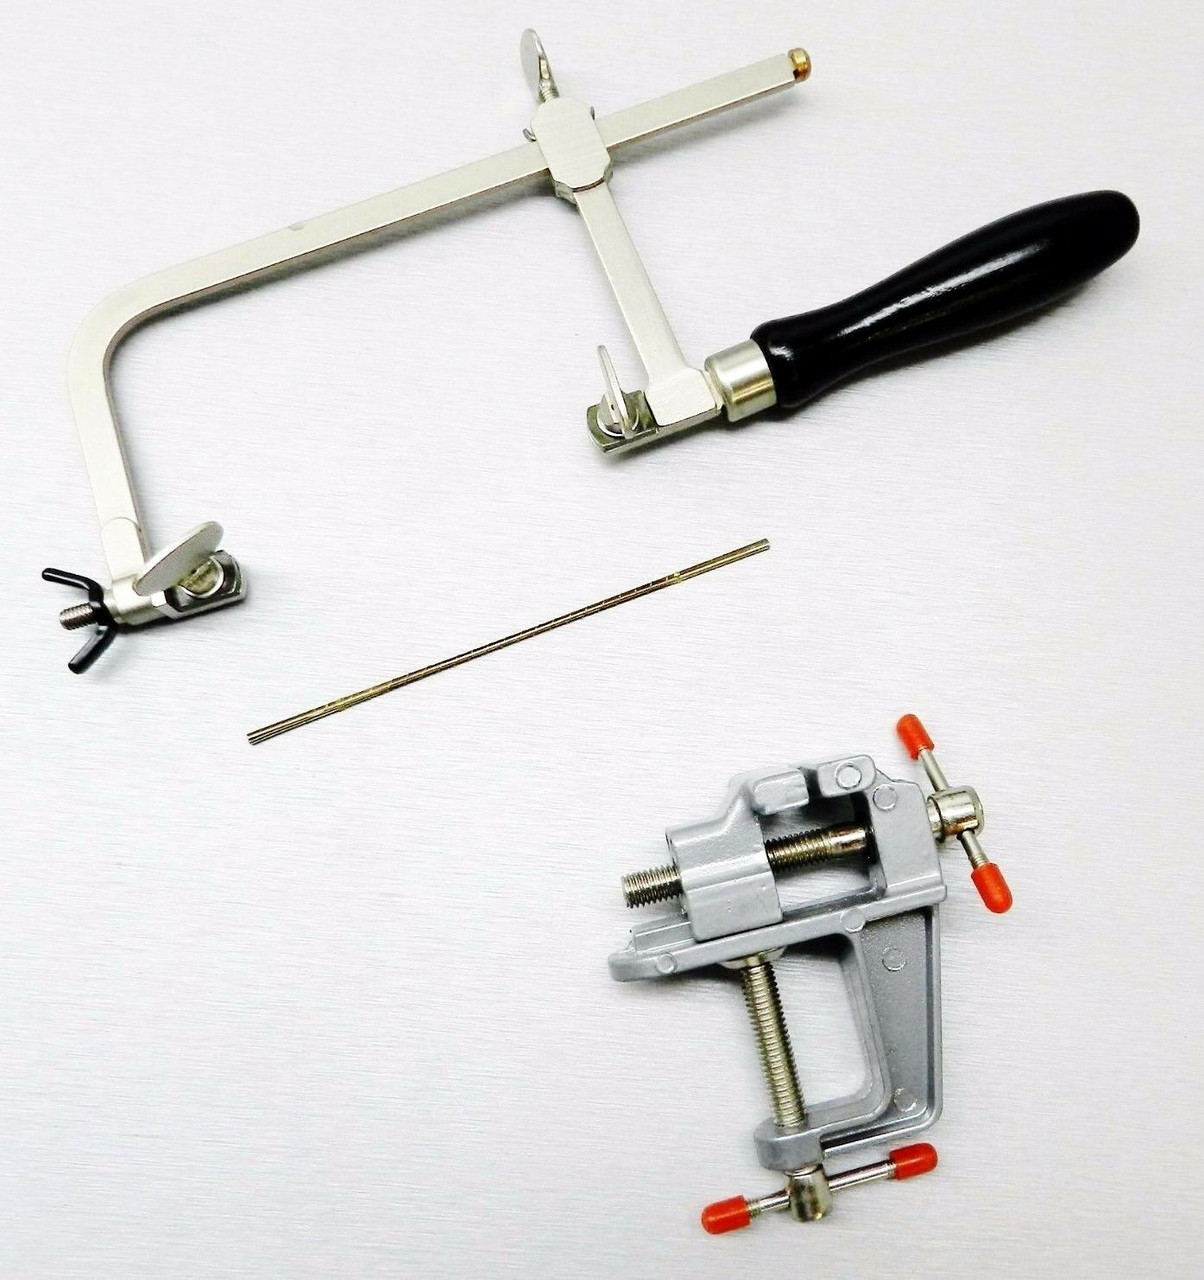 Jewellery piercing saw frame for Jewellers Adjustable frame size 80mm